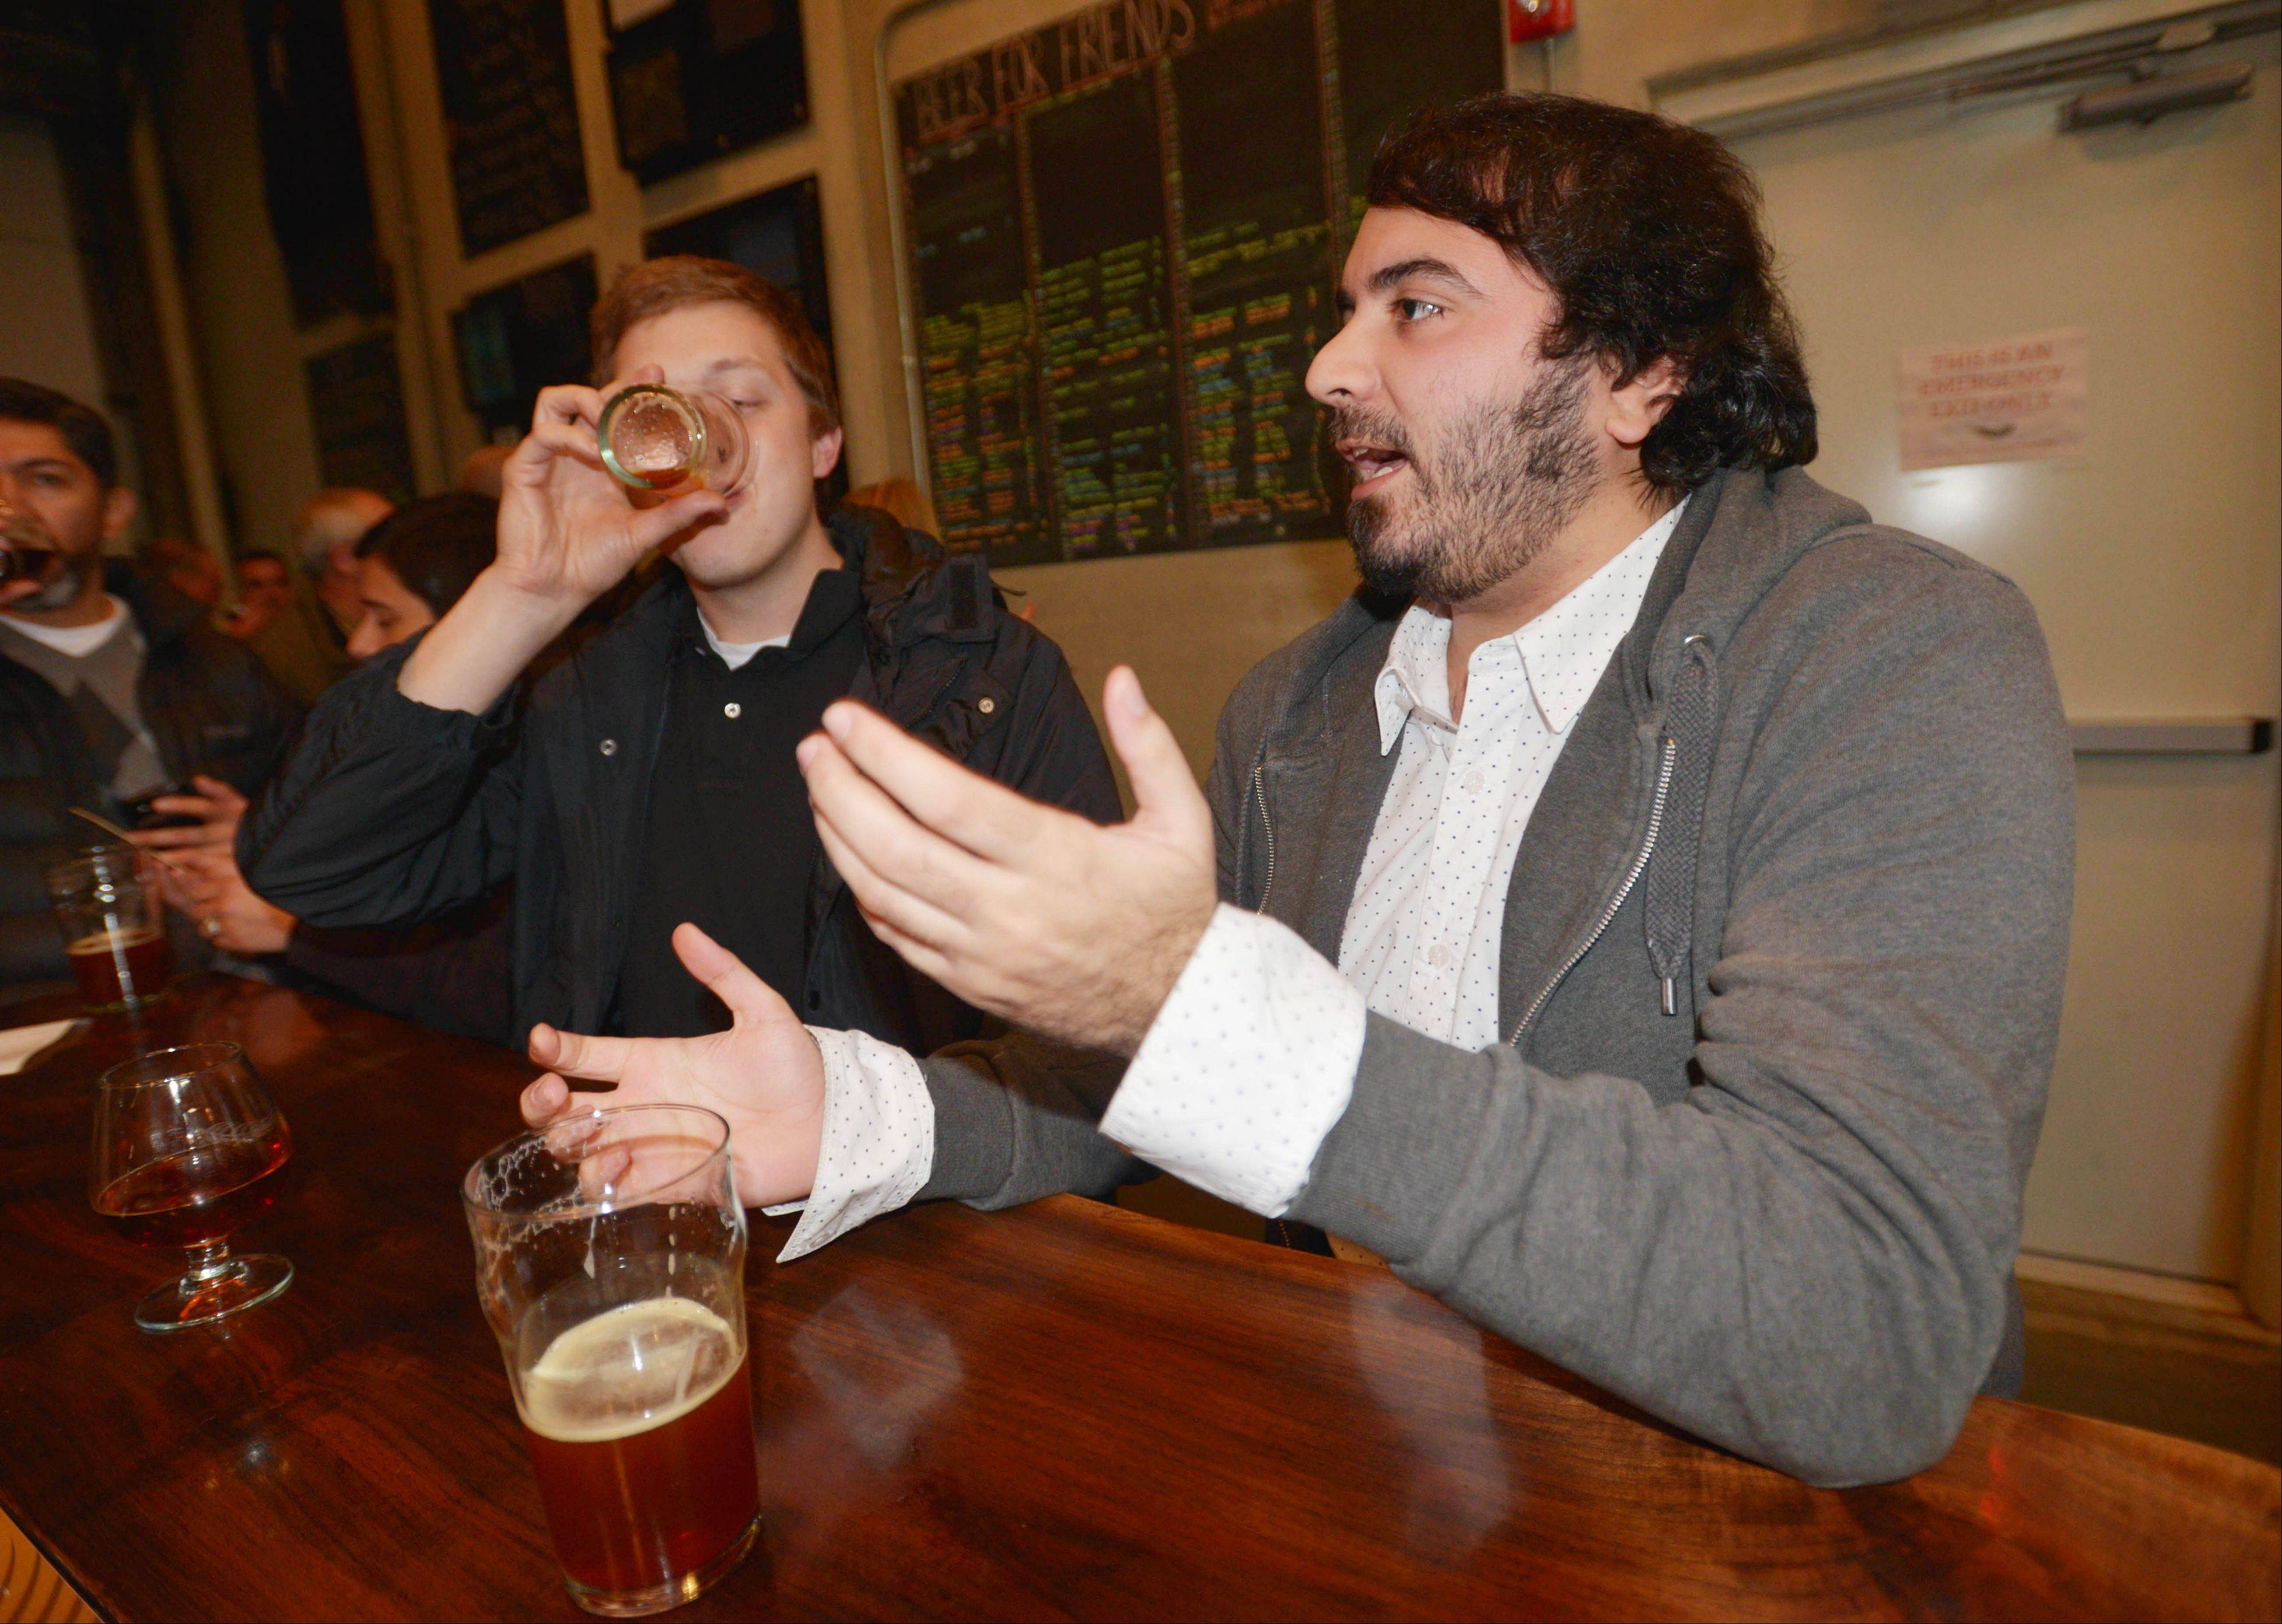 Anthony Collins, left, and Pouya Asadi, both of Aurora, enjoy beers at Solemn Oath Brewery in Naperville.